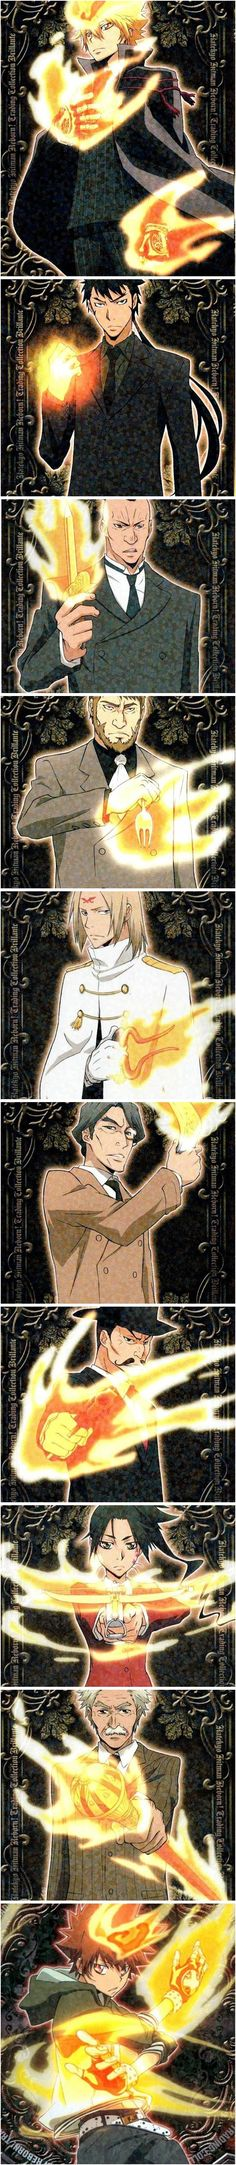 Vongola Boss #khr  Tsuna's flames are err a little out of control comparatively